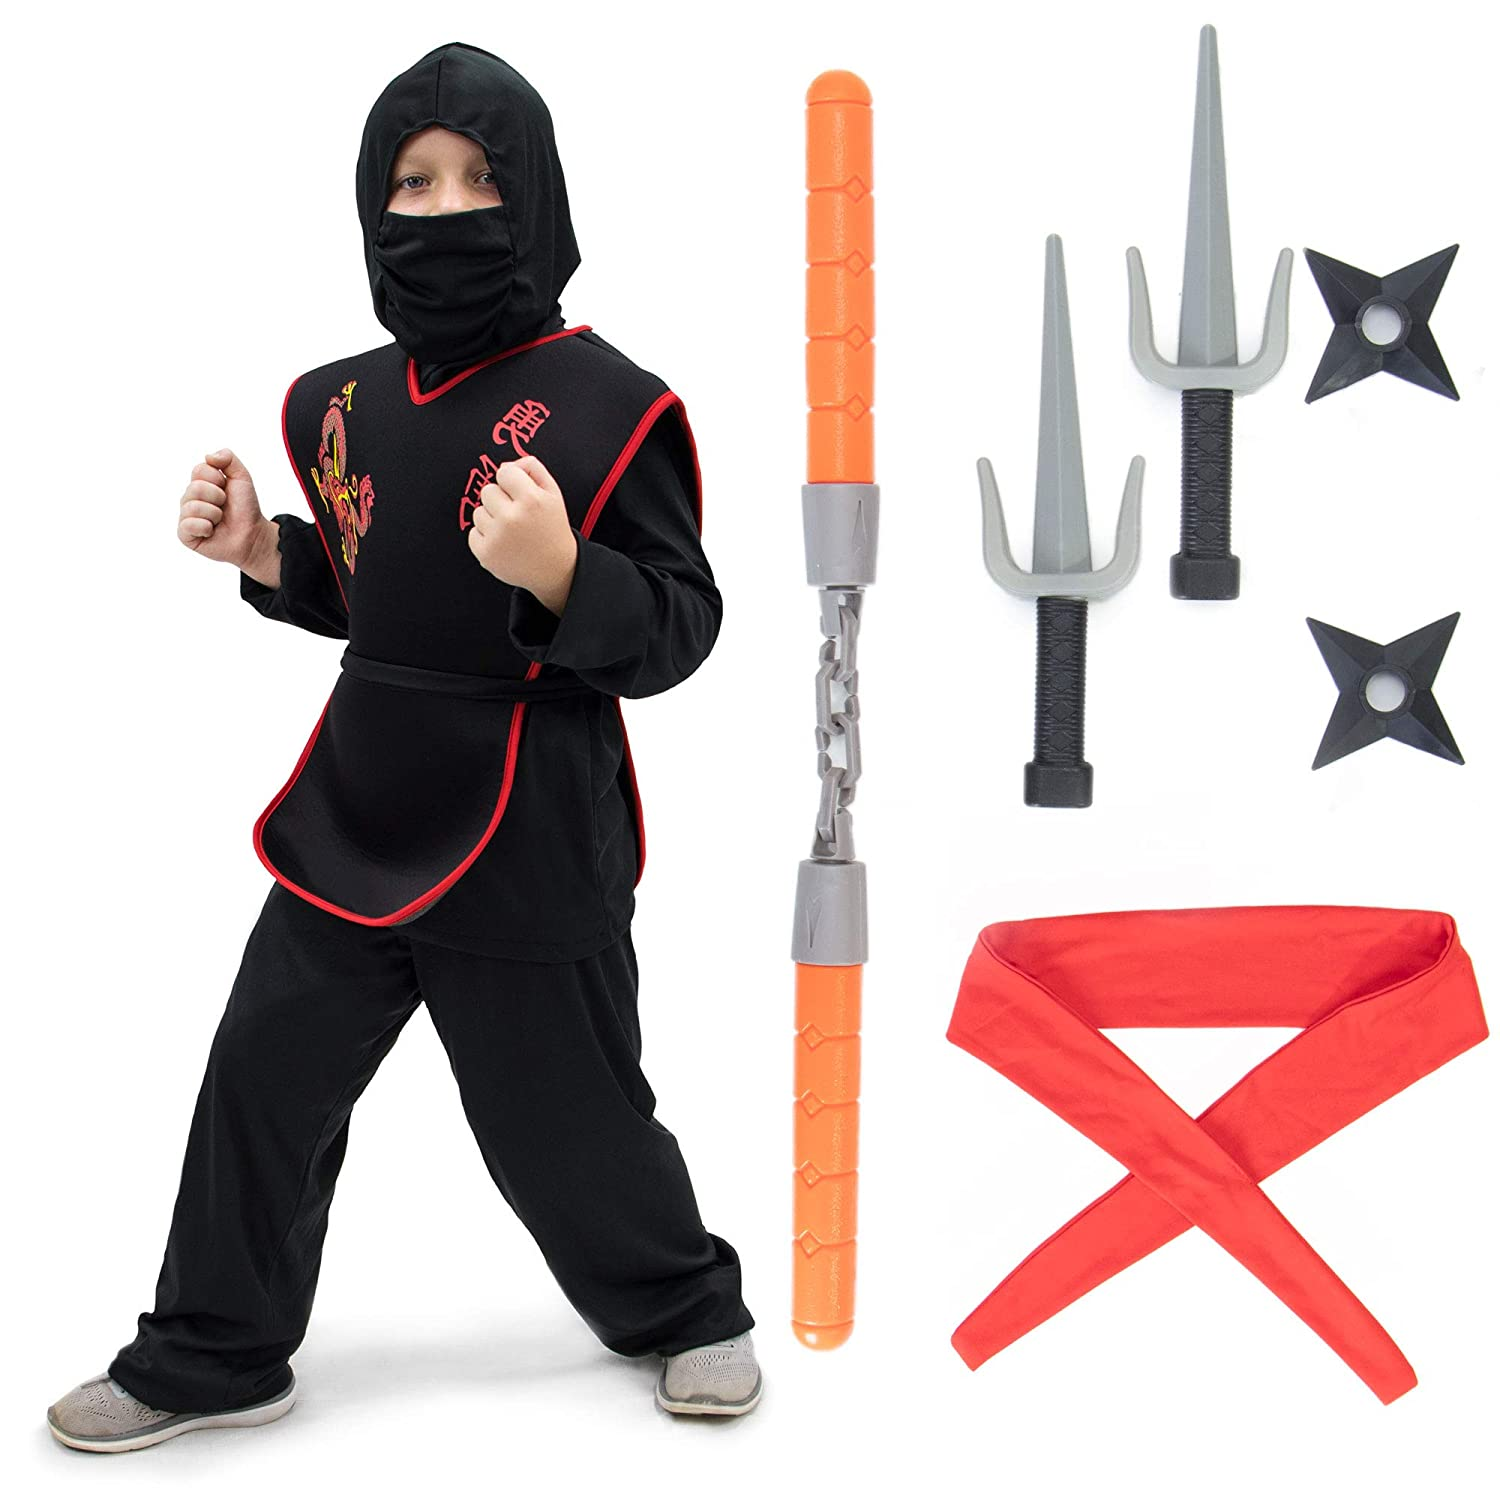 Deluxe Ninja Halloween Costume Set for Kids with Warrior Suit & 6 Props Black